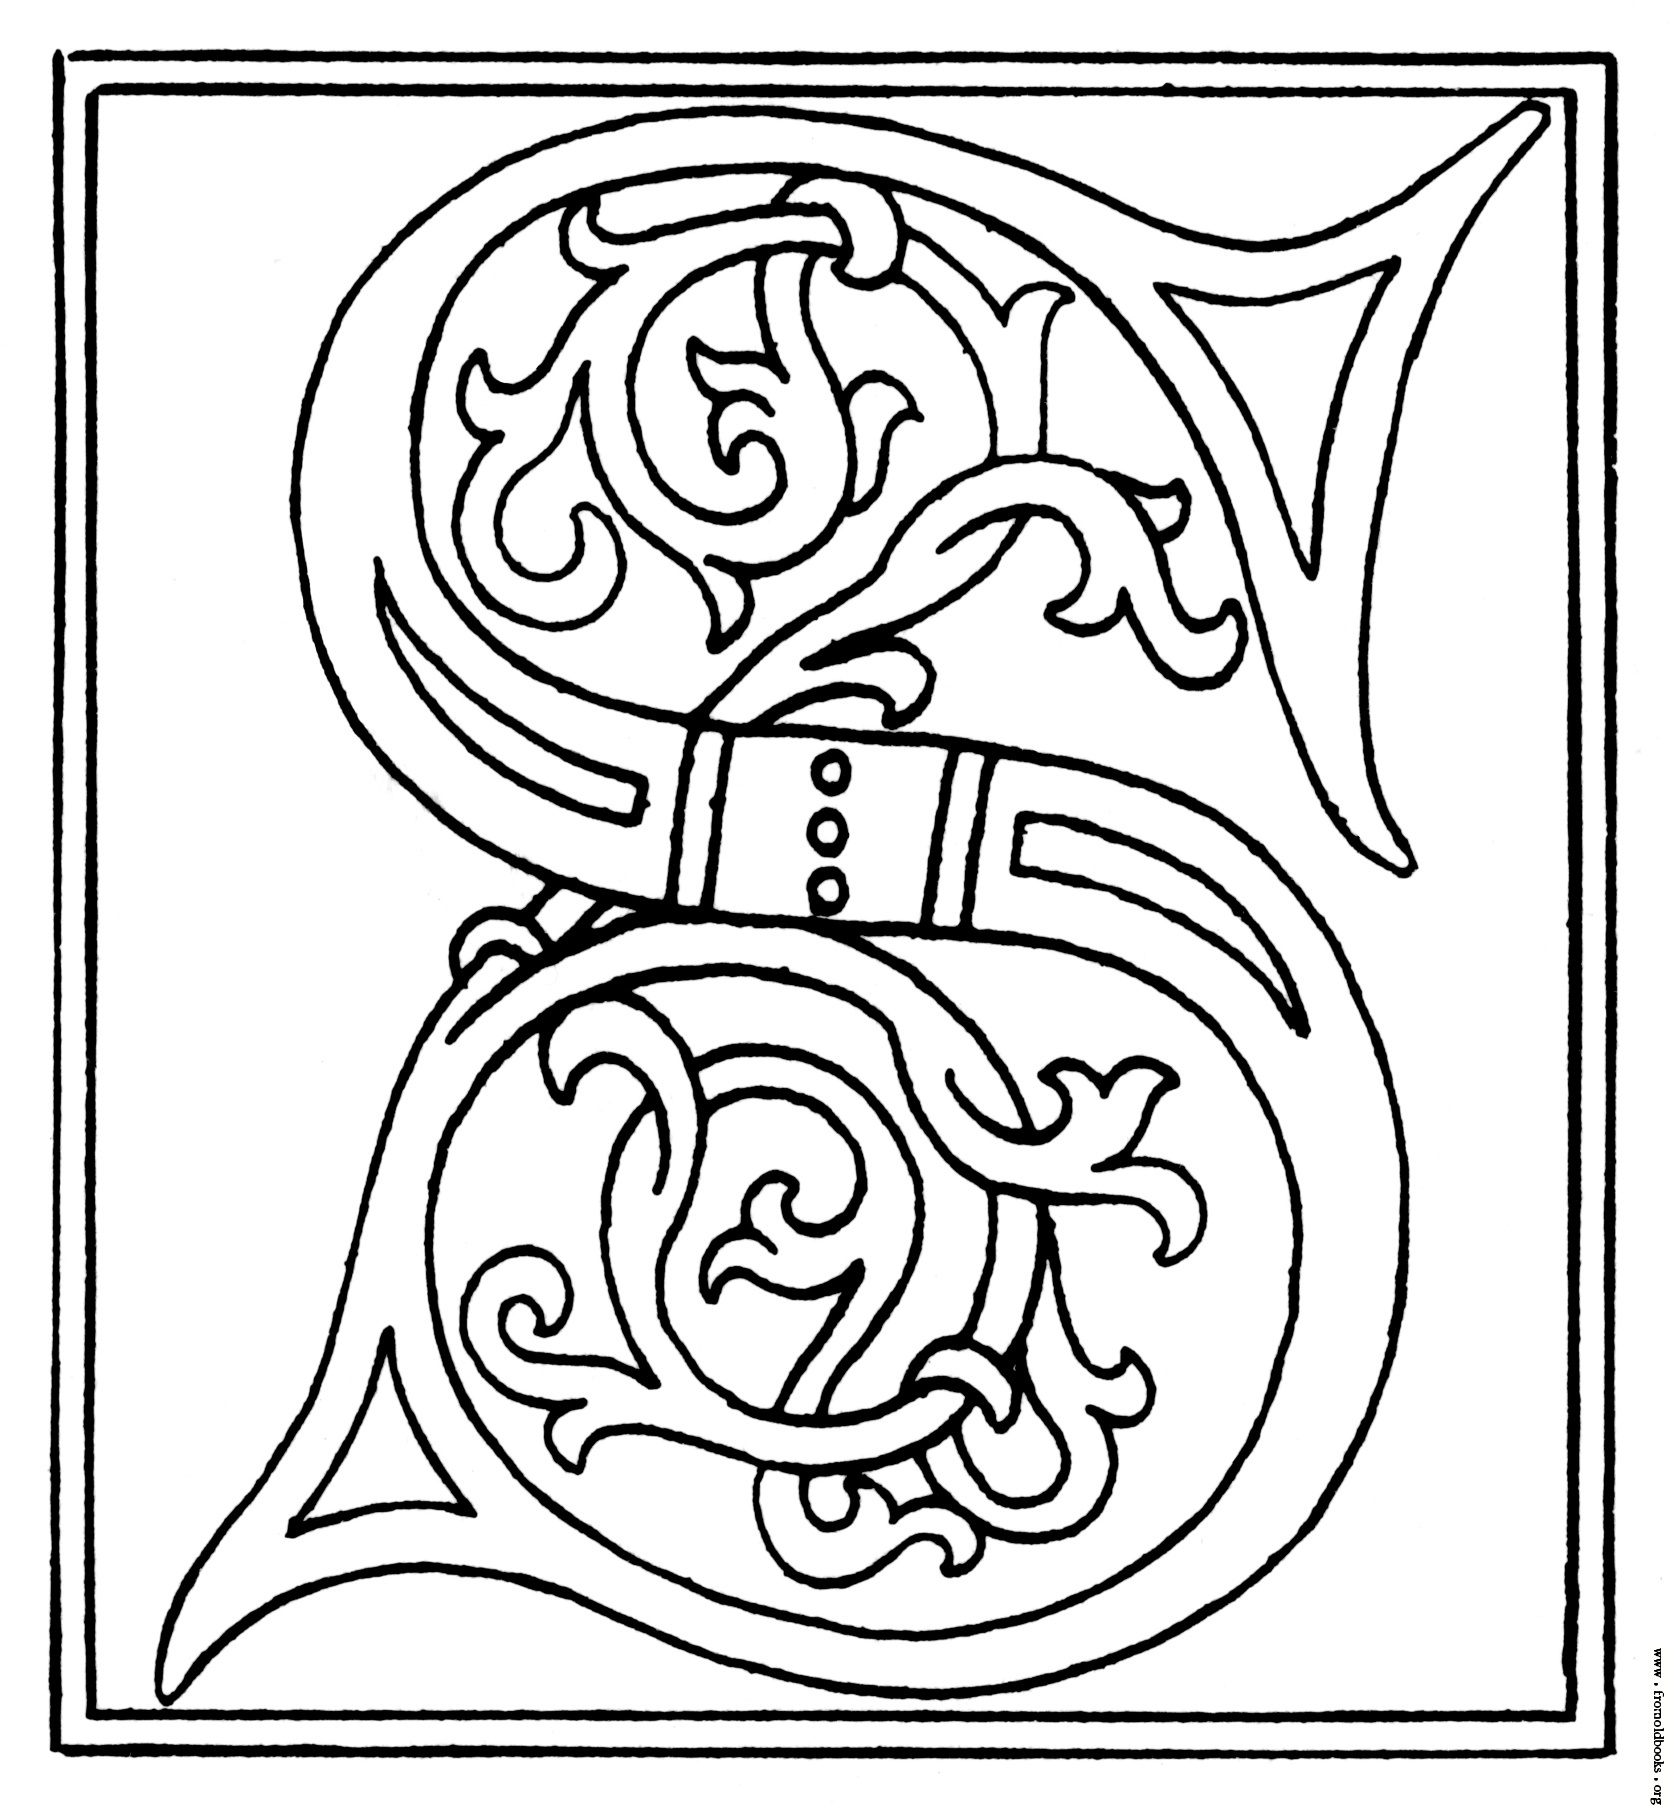 1669x1808 Clipart Initial Letter S From Late 15th Century Printed Book